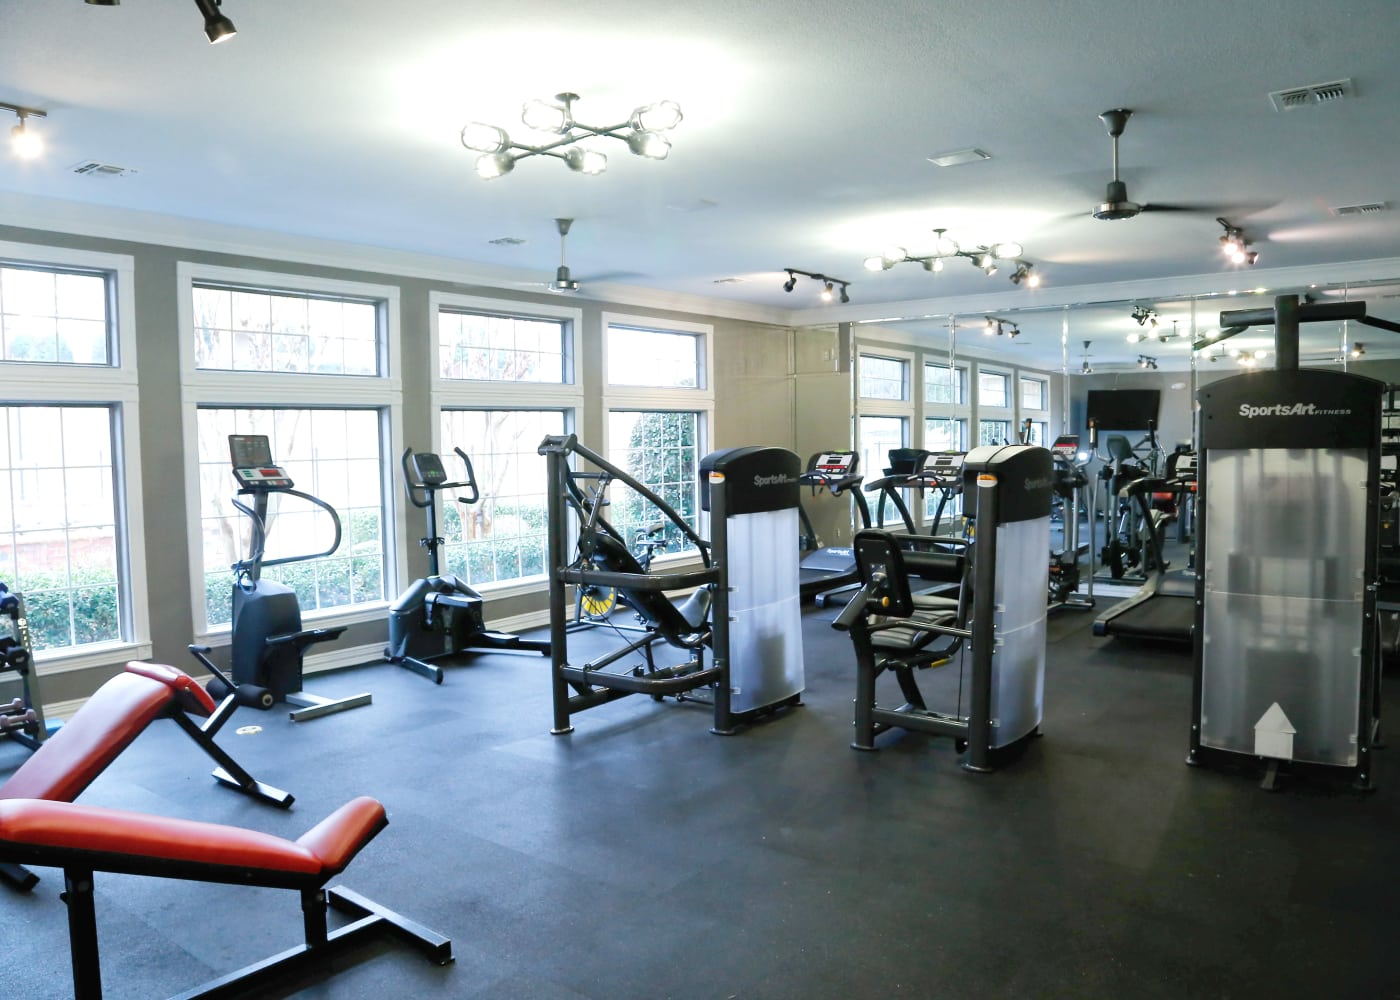 Off Campus Student Housing at Flatts at South Campus has a large Fitness Center.